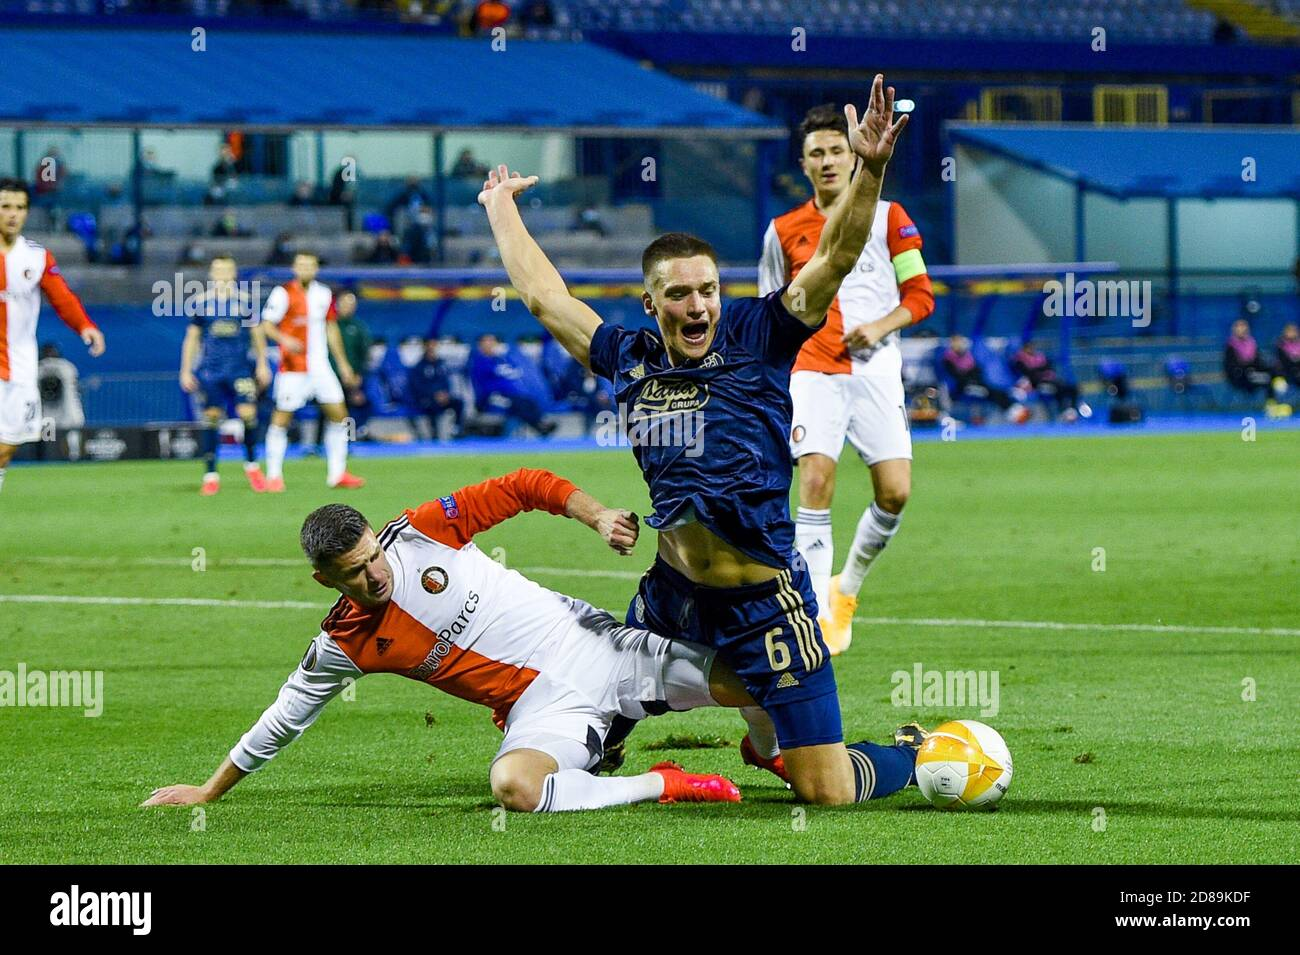 Bryan Linssen Of Feyenoord Rasmus Lauritsen Of Dinamo Zagreb During The Uefa Europa League Group Stage Group K Football Match Between Dinamo Zagr C Stock Photo Alamy